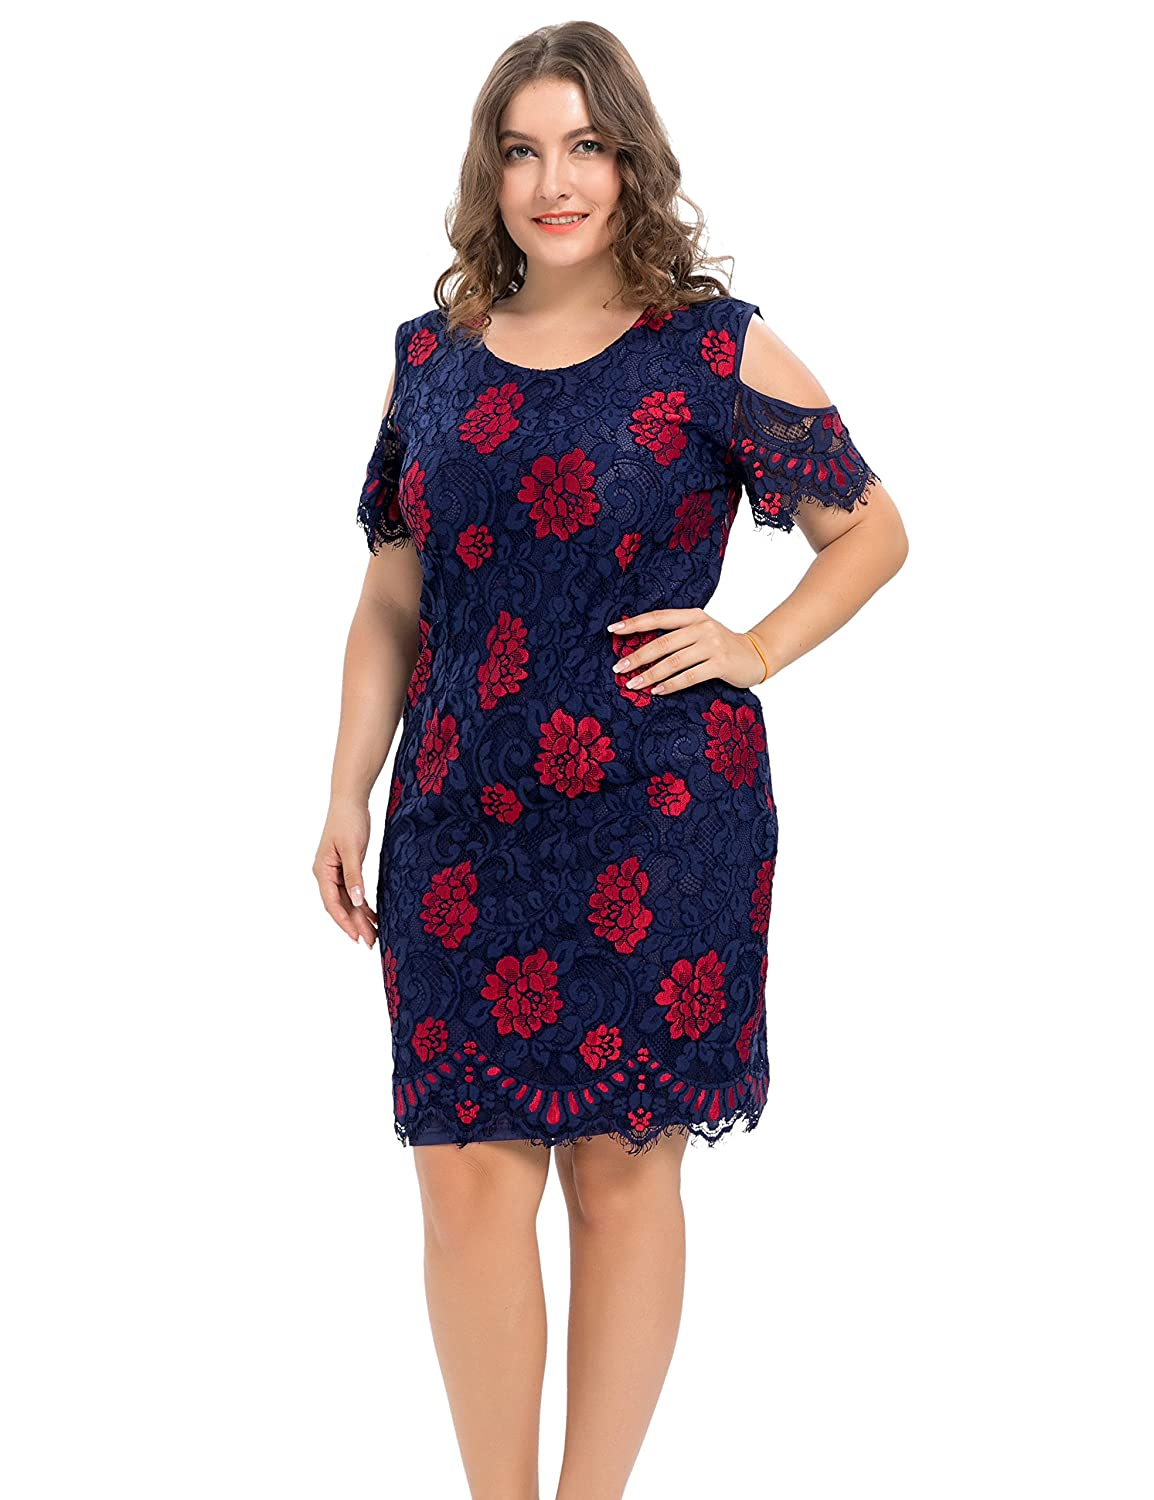 Chicwe Women s Plus Size Lined Floral Printed Off Shoulder Lace Dress -  Knee Length Casual Party Cocktail Dress at Amazon Women s Clothing store  777422158